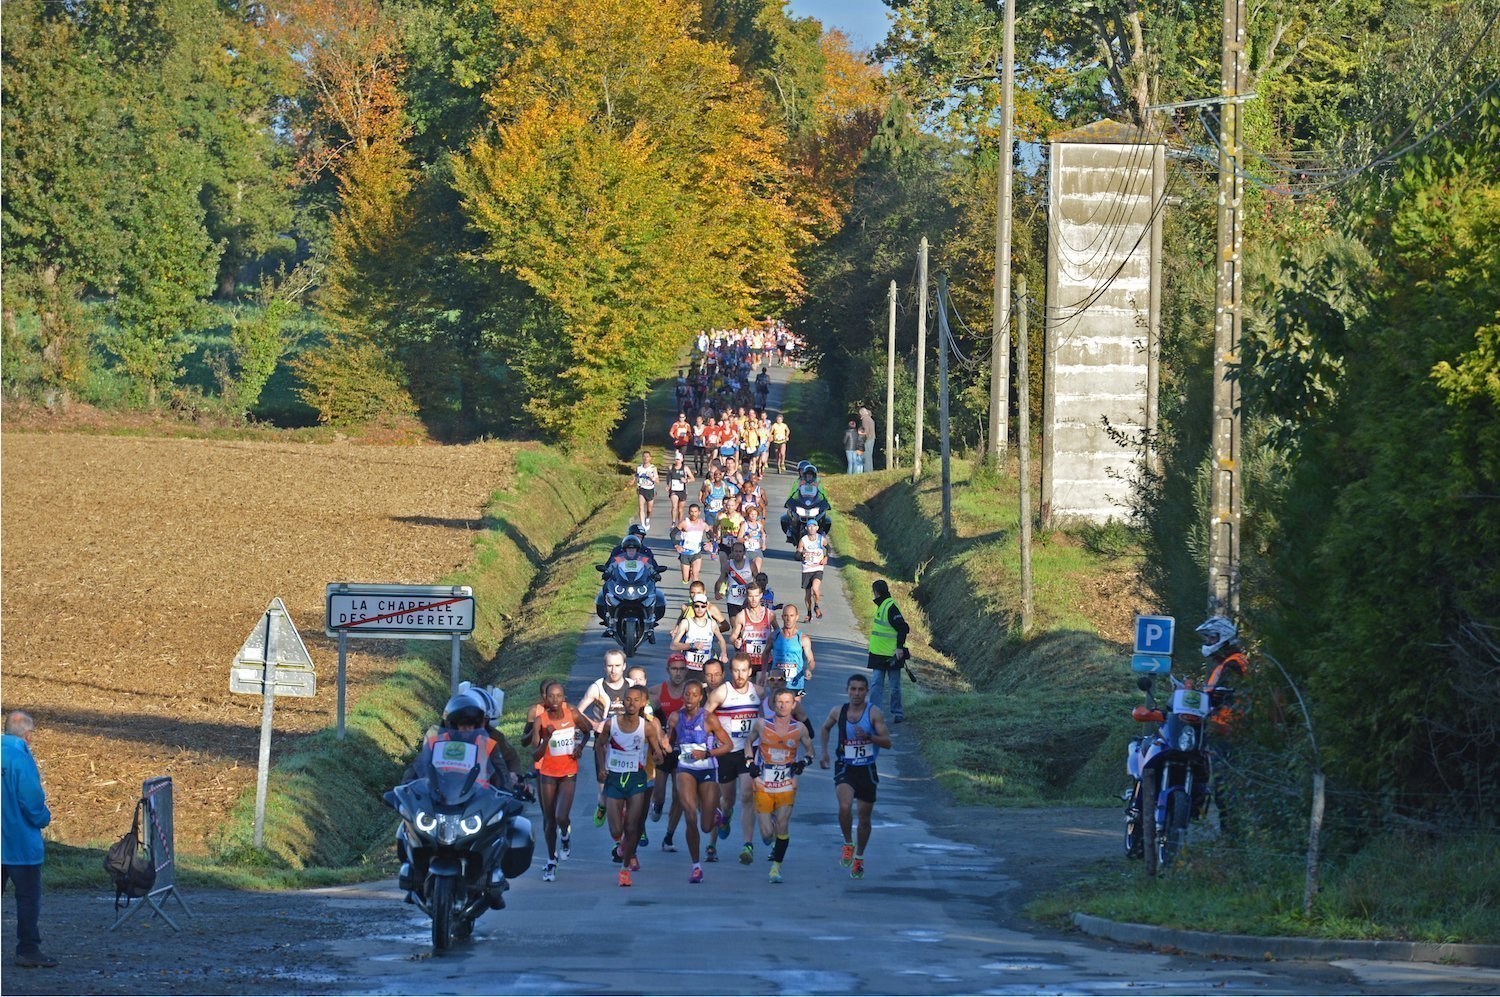 A route combining town and country - The green marathon